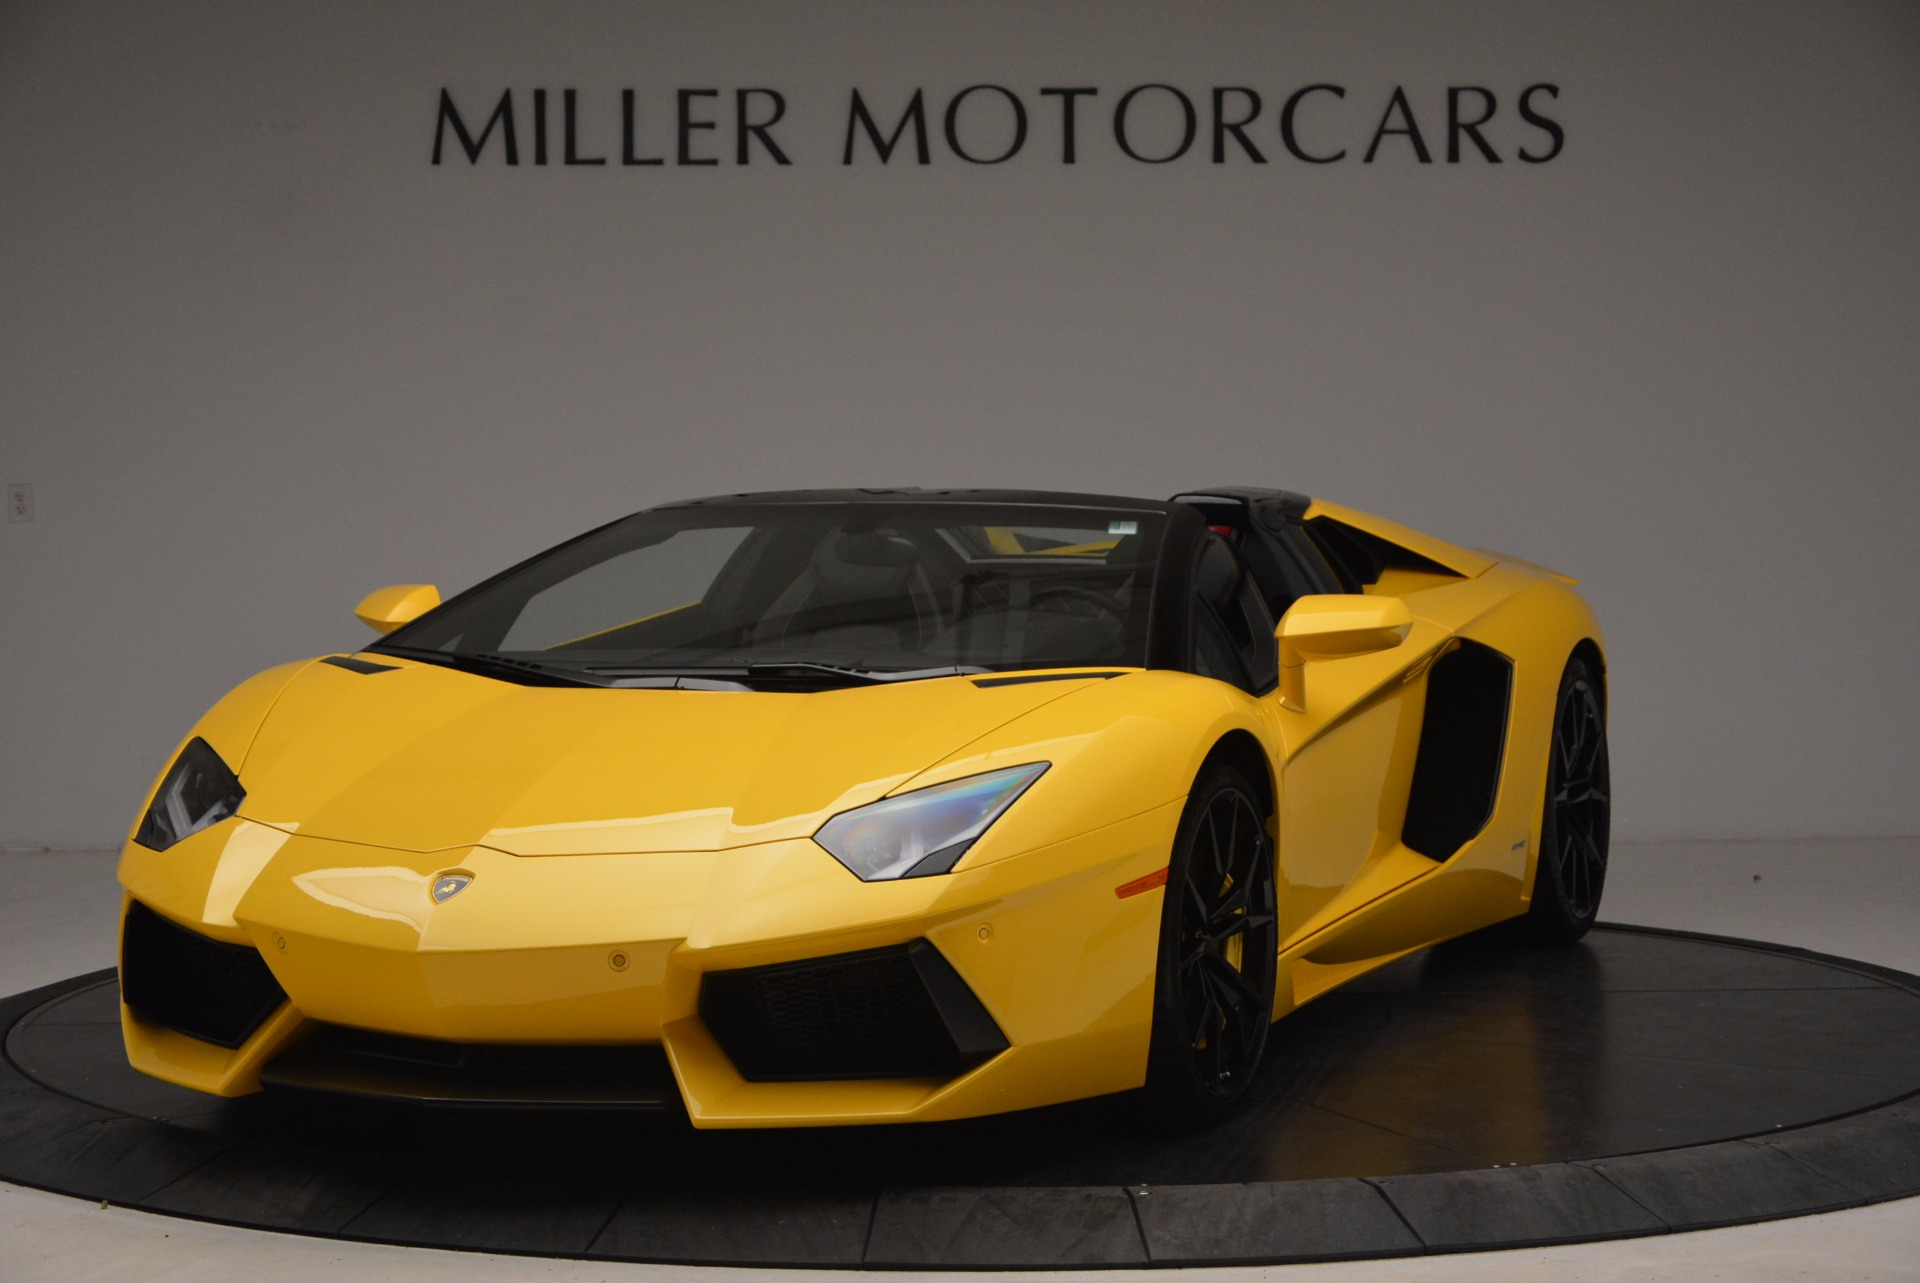 Used 2015 Lamborghini Aventador LP 700-4 Roadster for sale Sold at Rolls-Royce Motor Cars Greenwich in Greenwich CT 06830 1